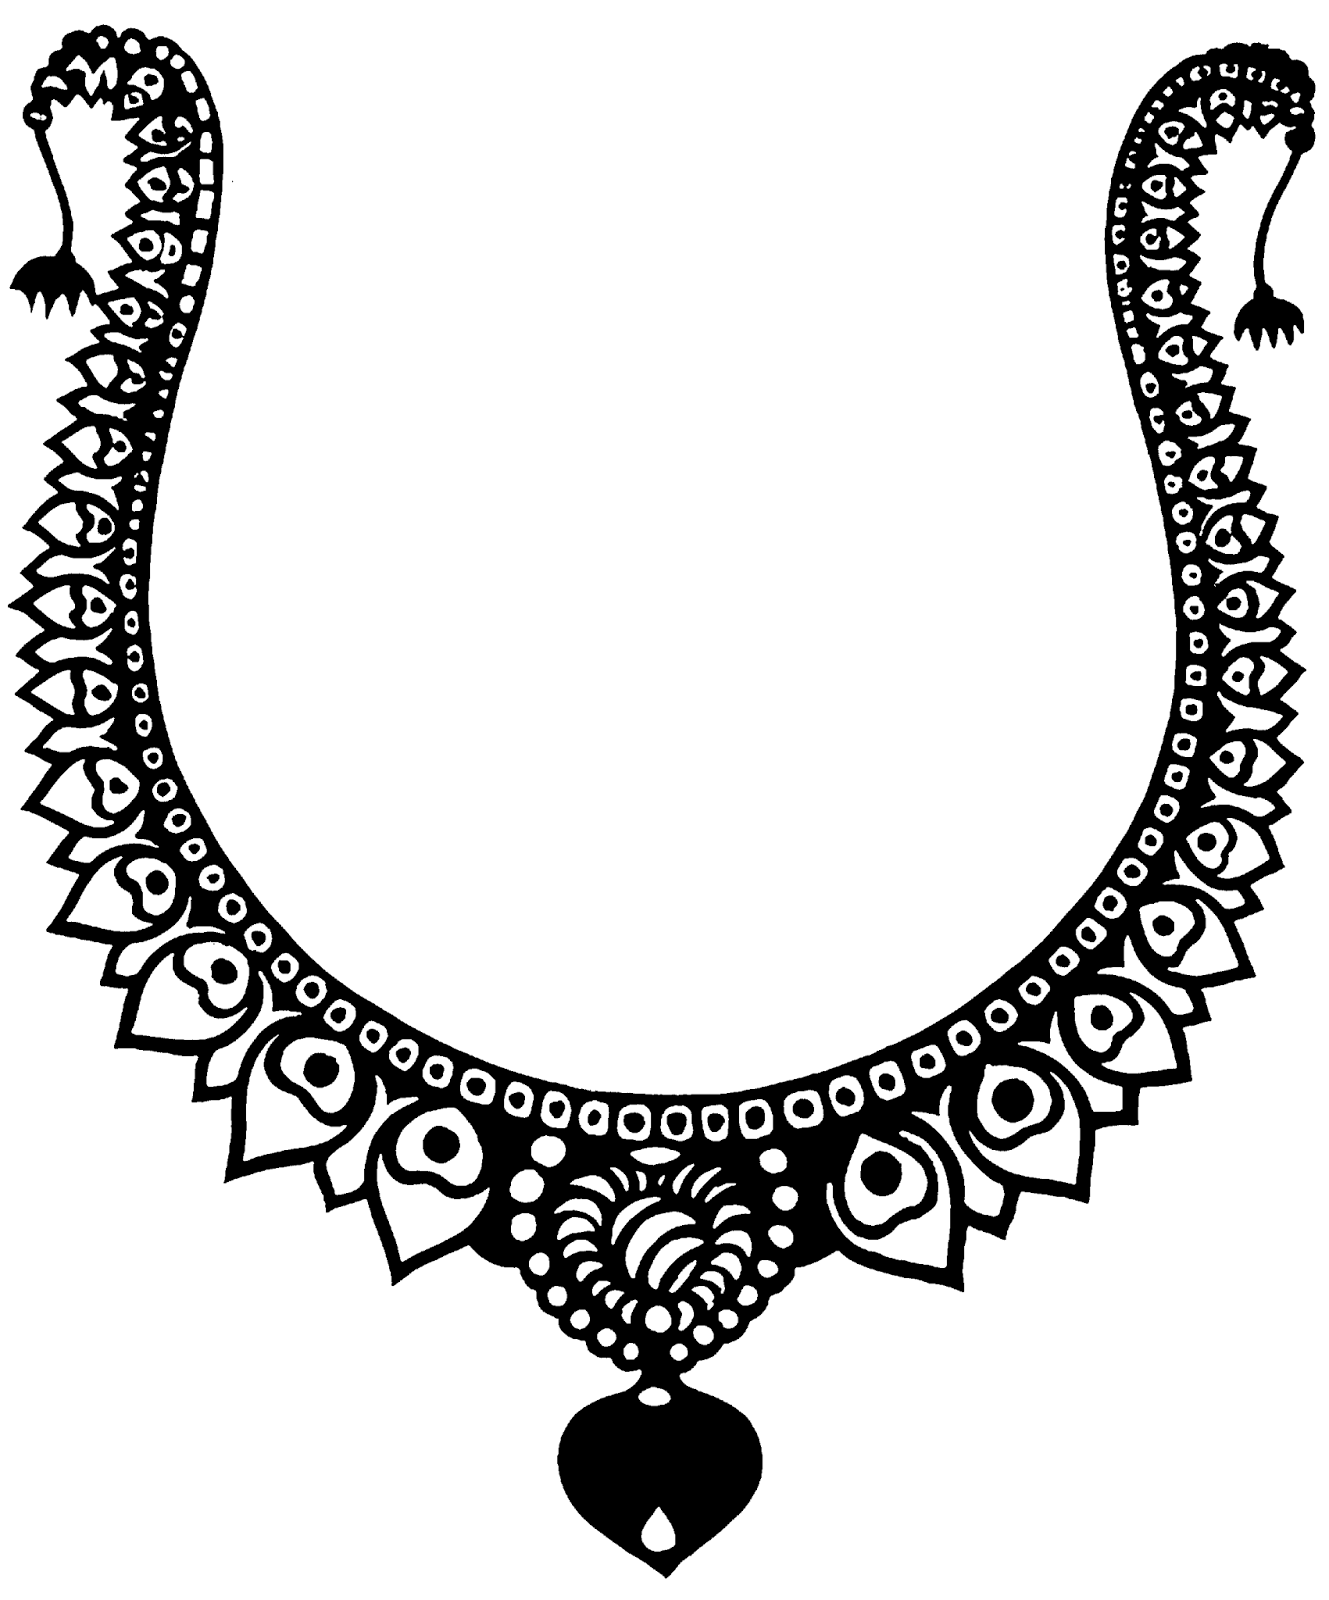 Necklace clipart jewelry #14